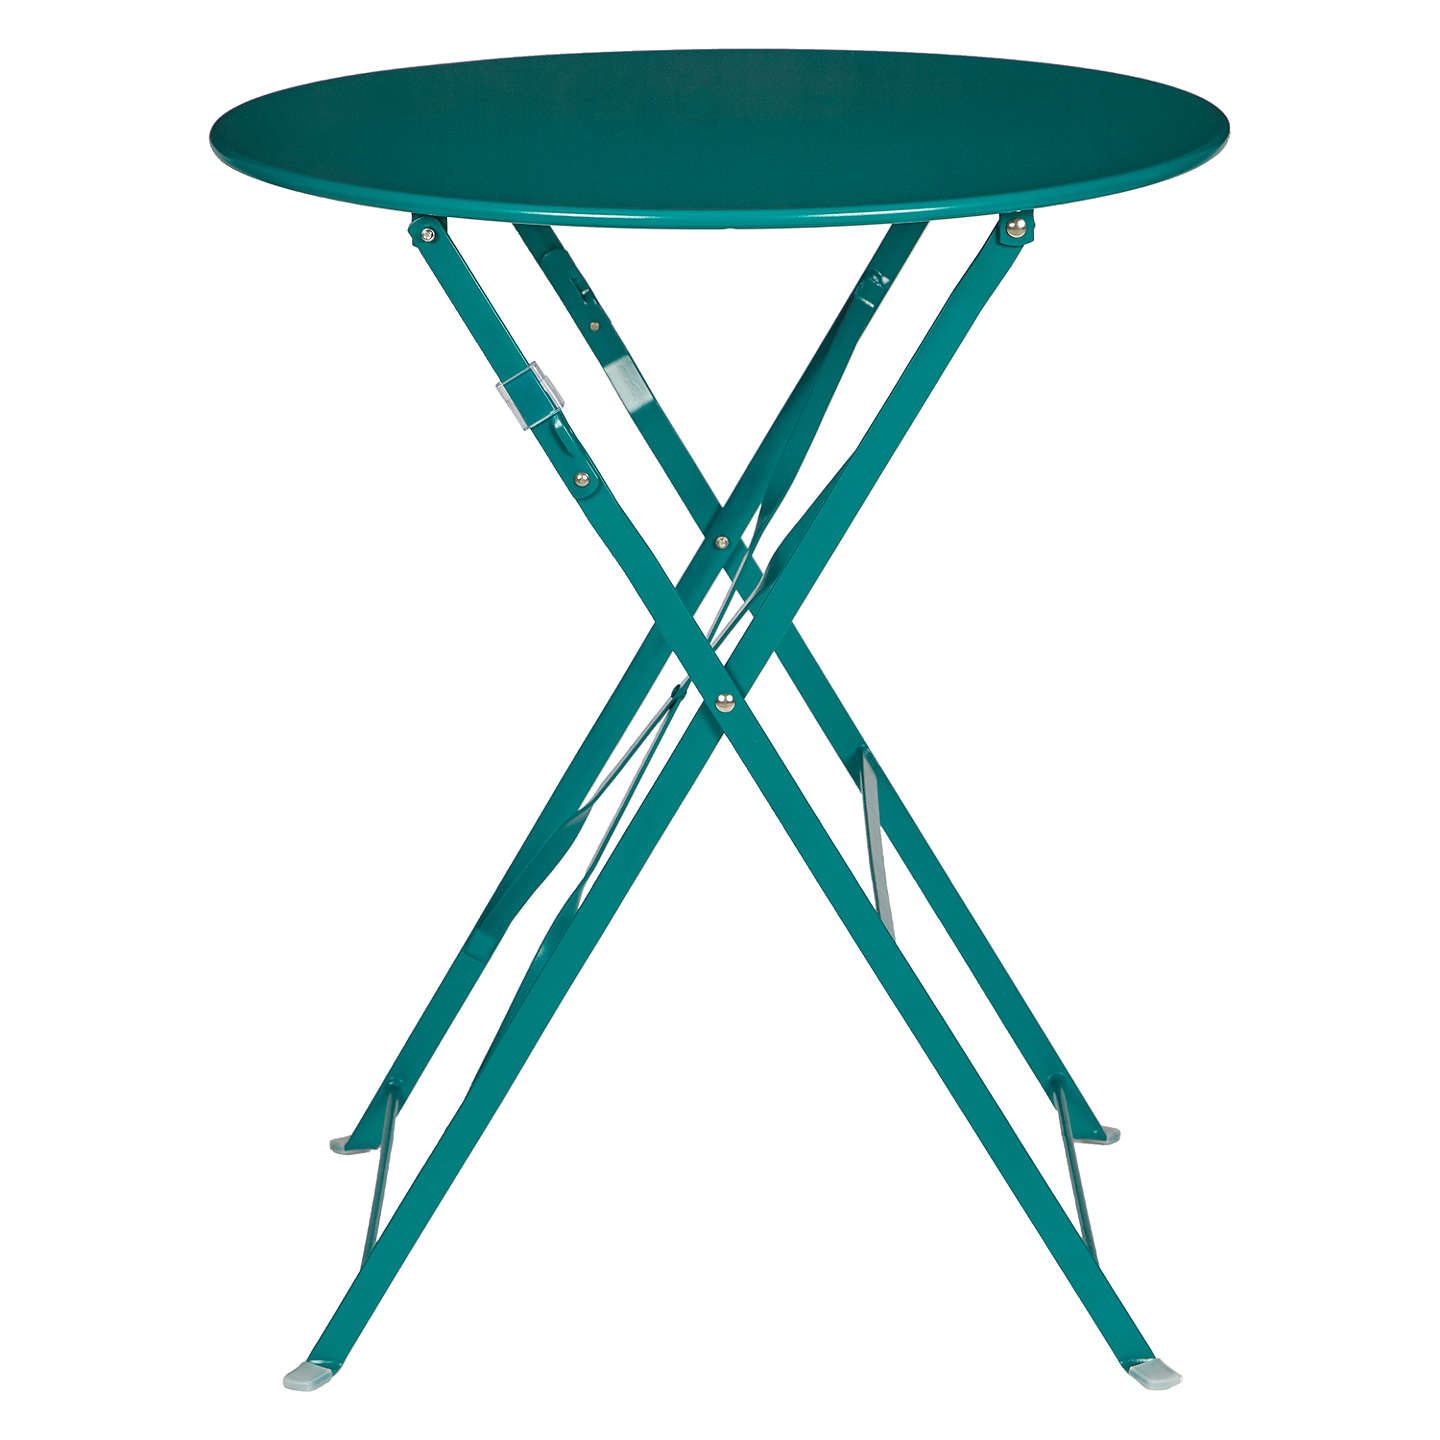 Garden Table And Chairs Set John Lewis: House By John Lewis Brighton Garden Bistro Table And